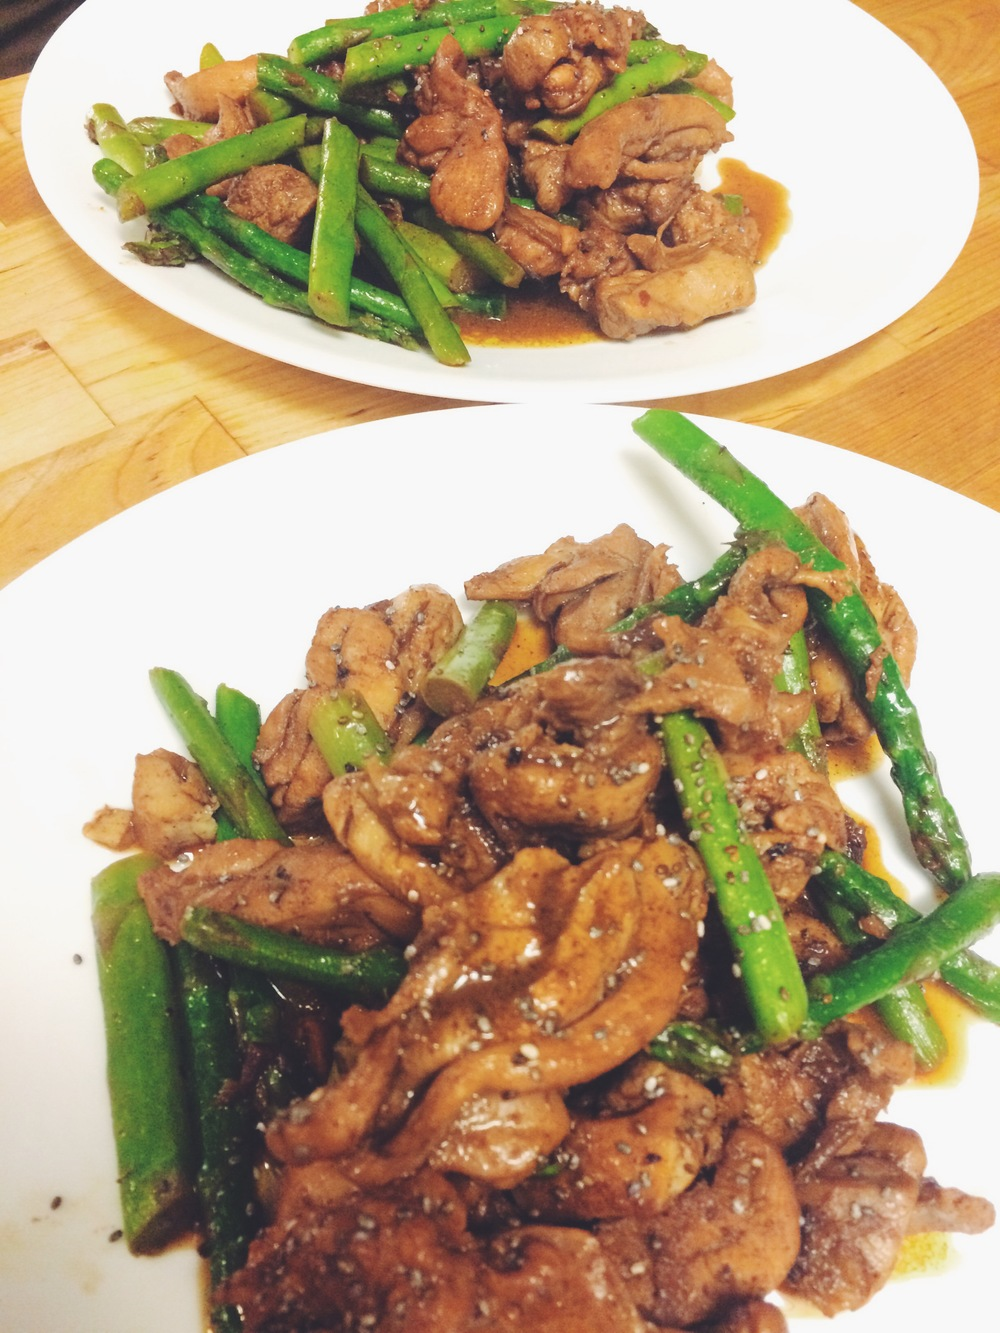 DATE AND ASPARAGUS CHICKEN